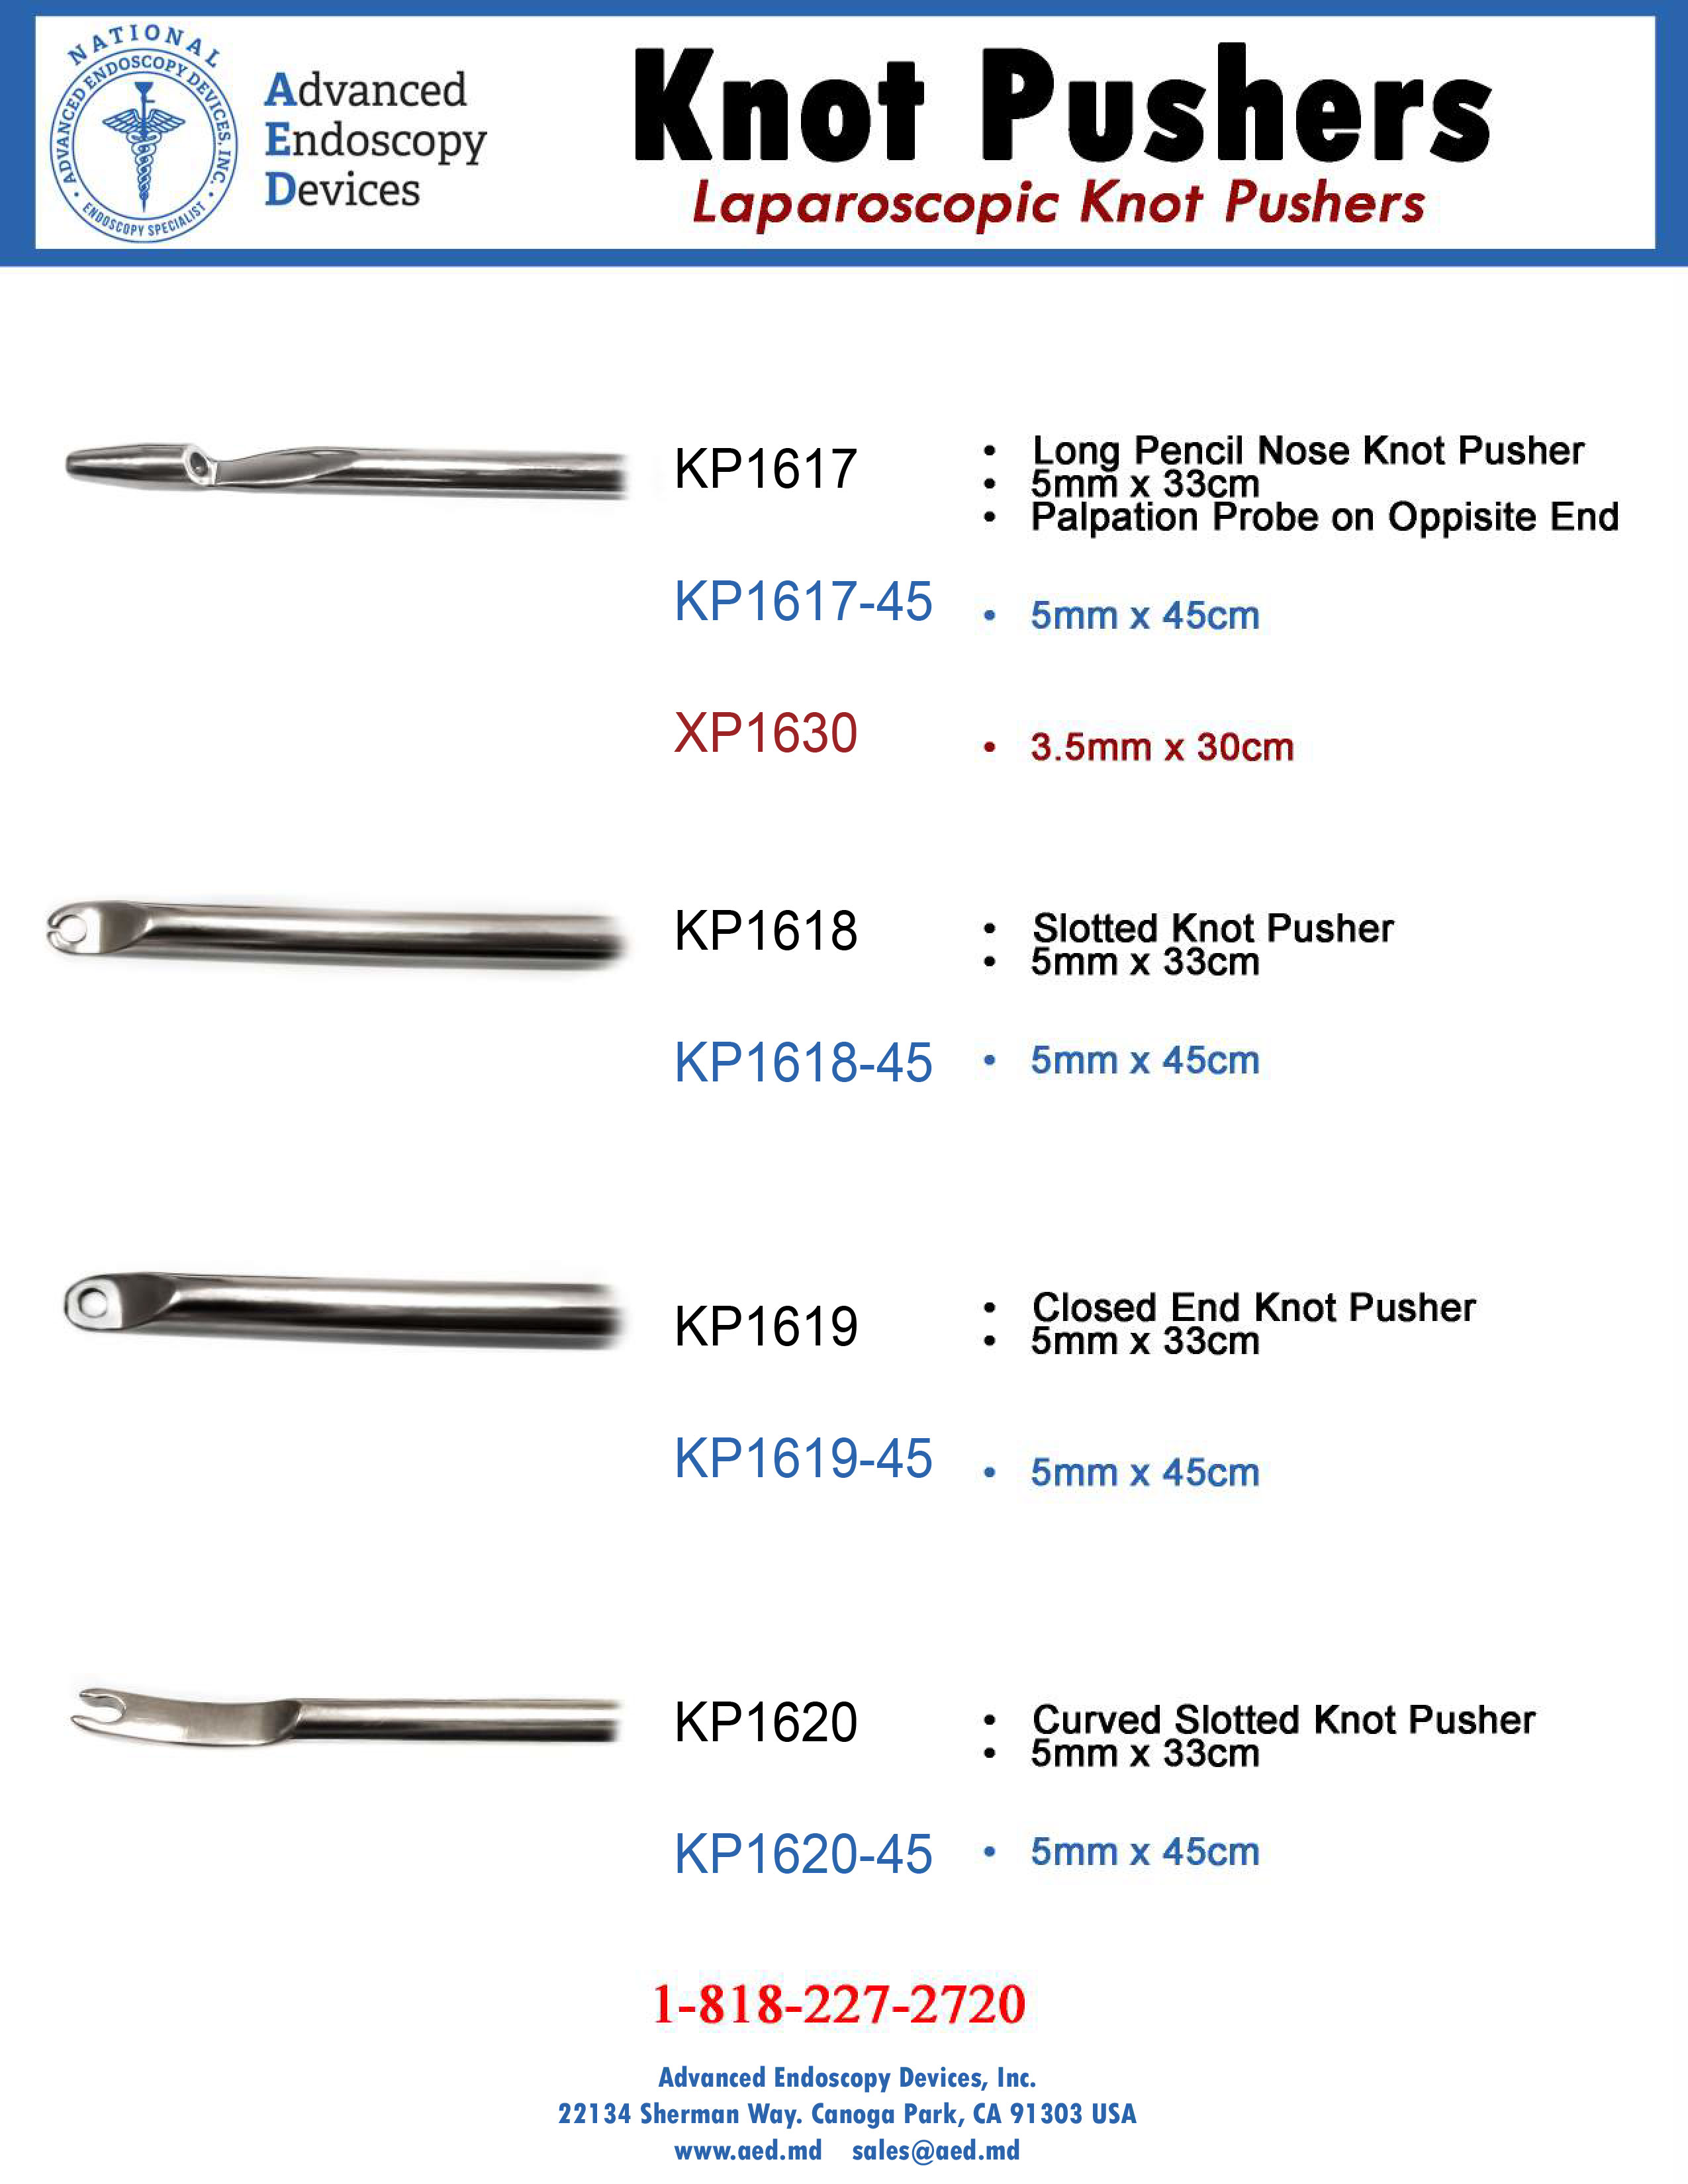 Laparoscopic Knot Pusher Product Page